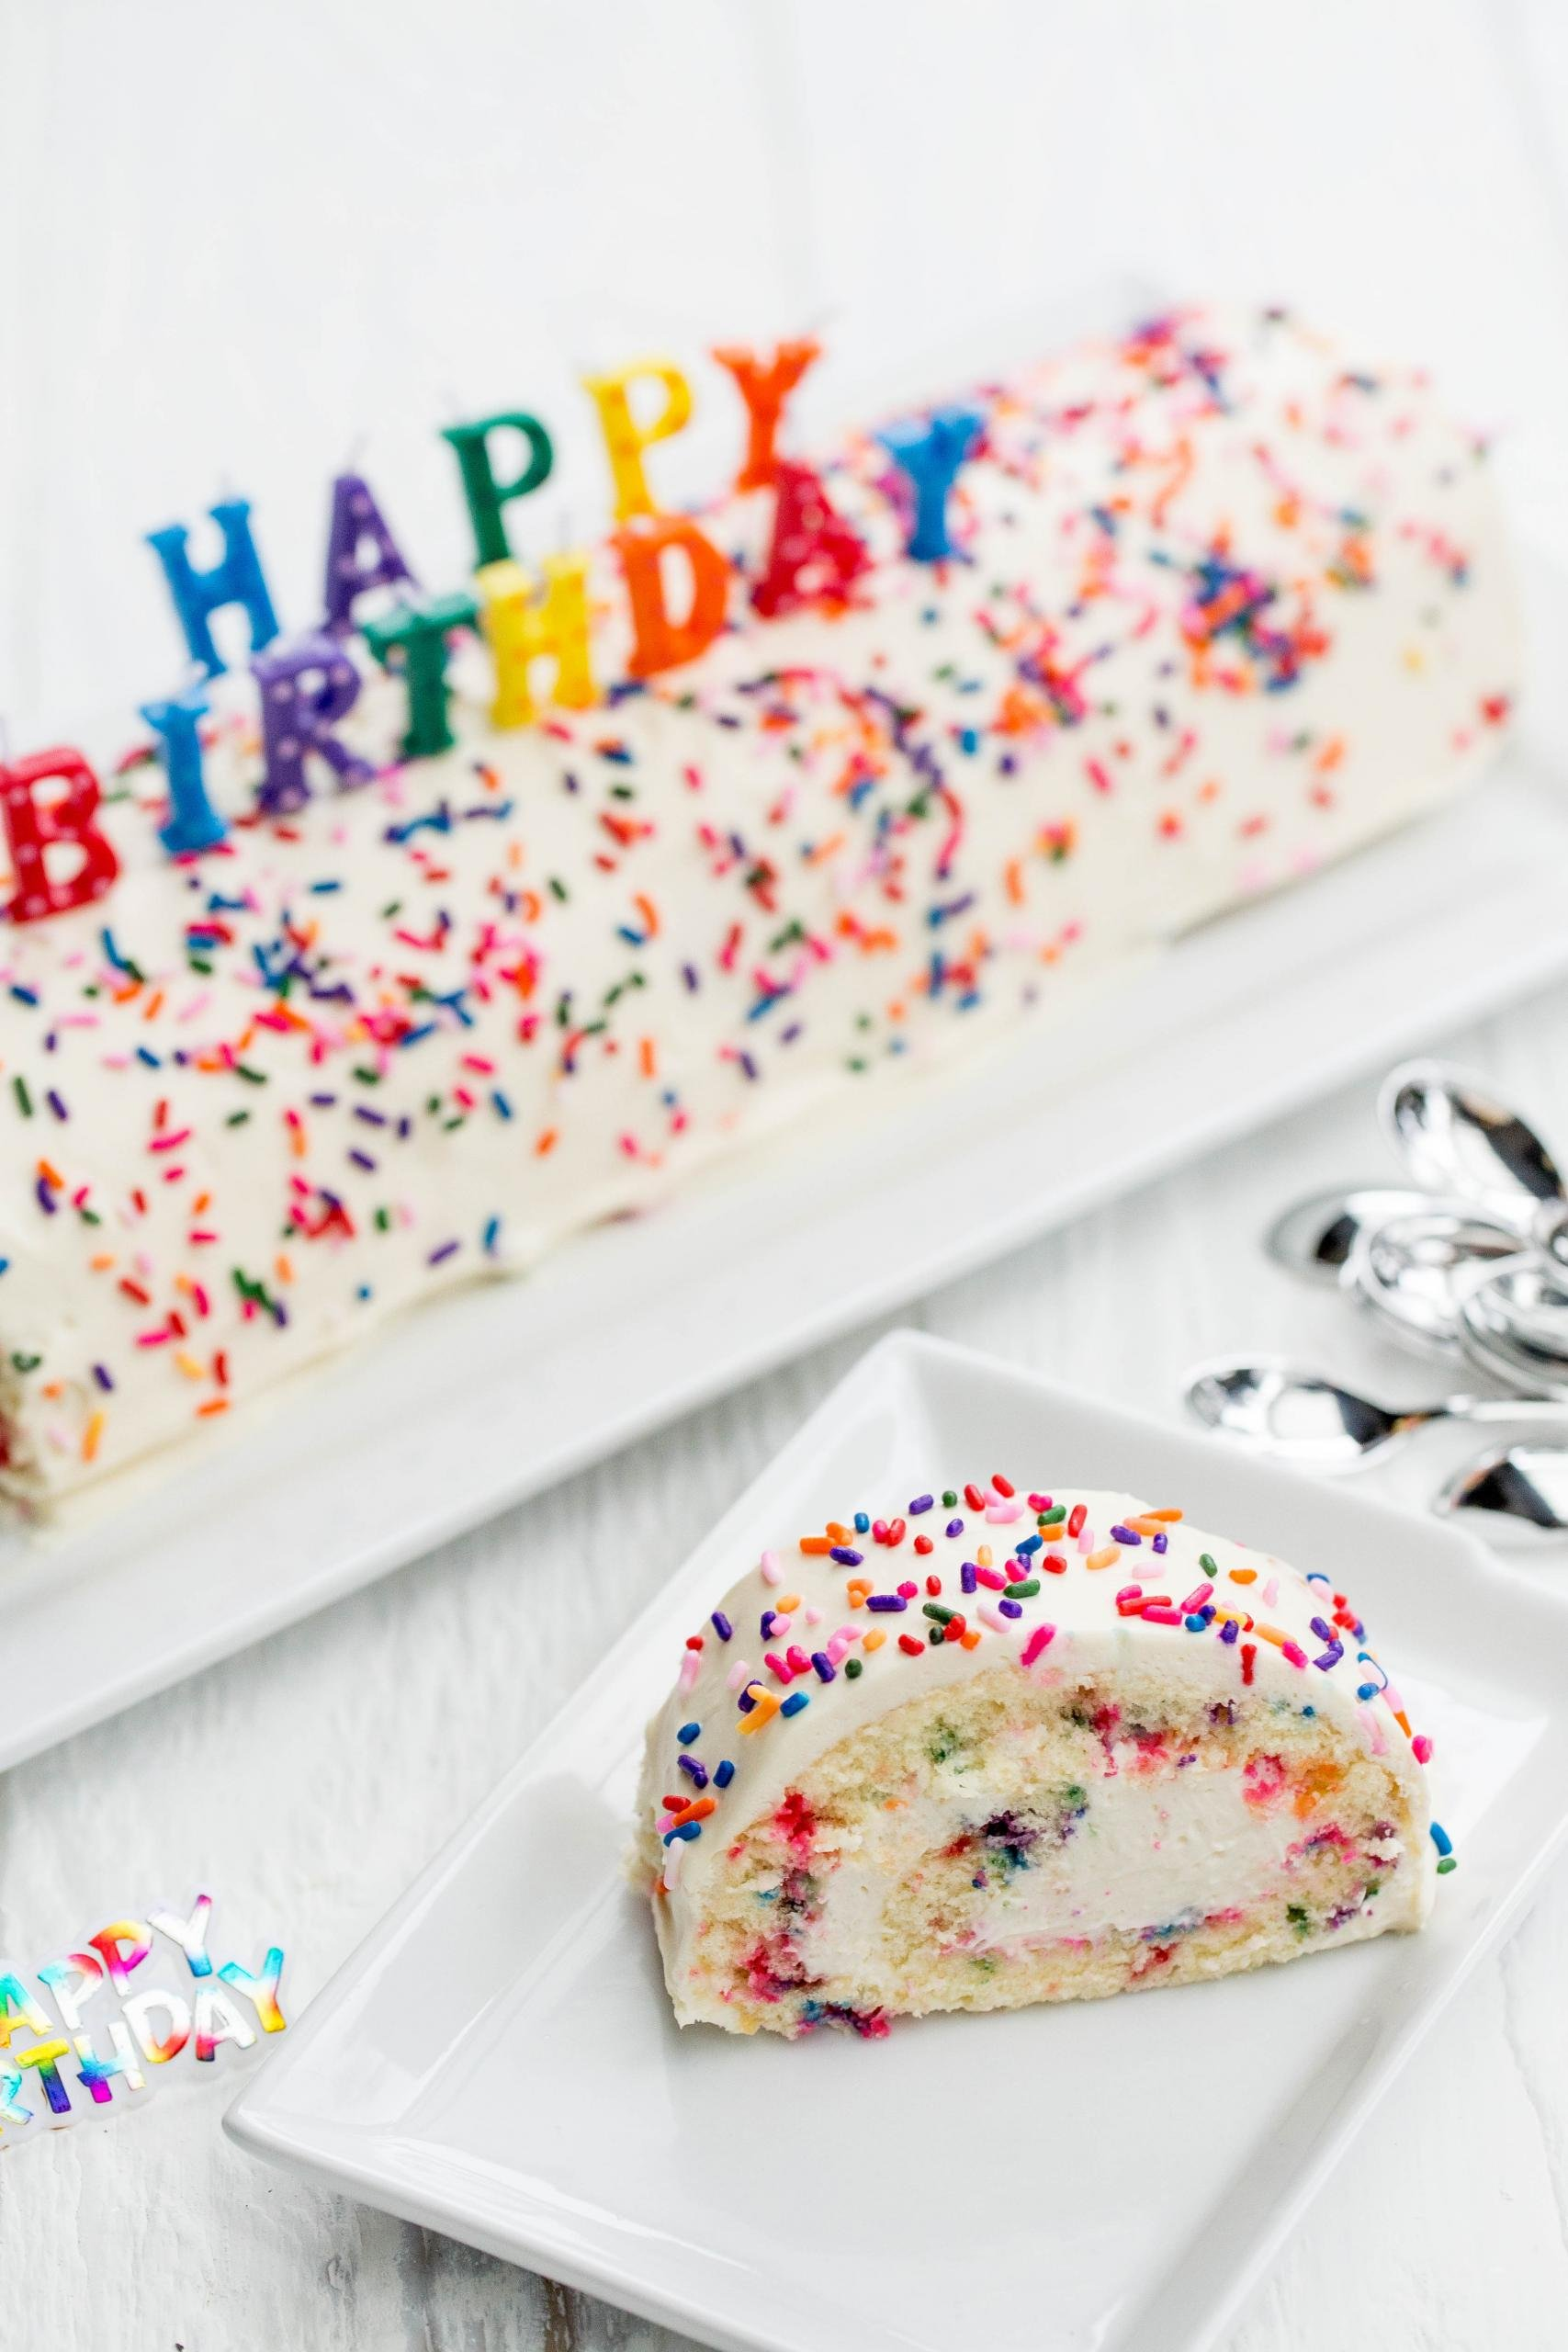 Astonishing Easy Birthday Cake Roulade Recipe Momsdish Personalised Birthday Cards Paralily Jamesorg